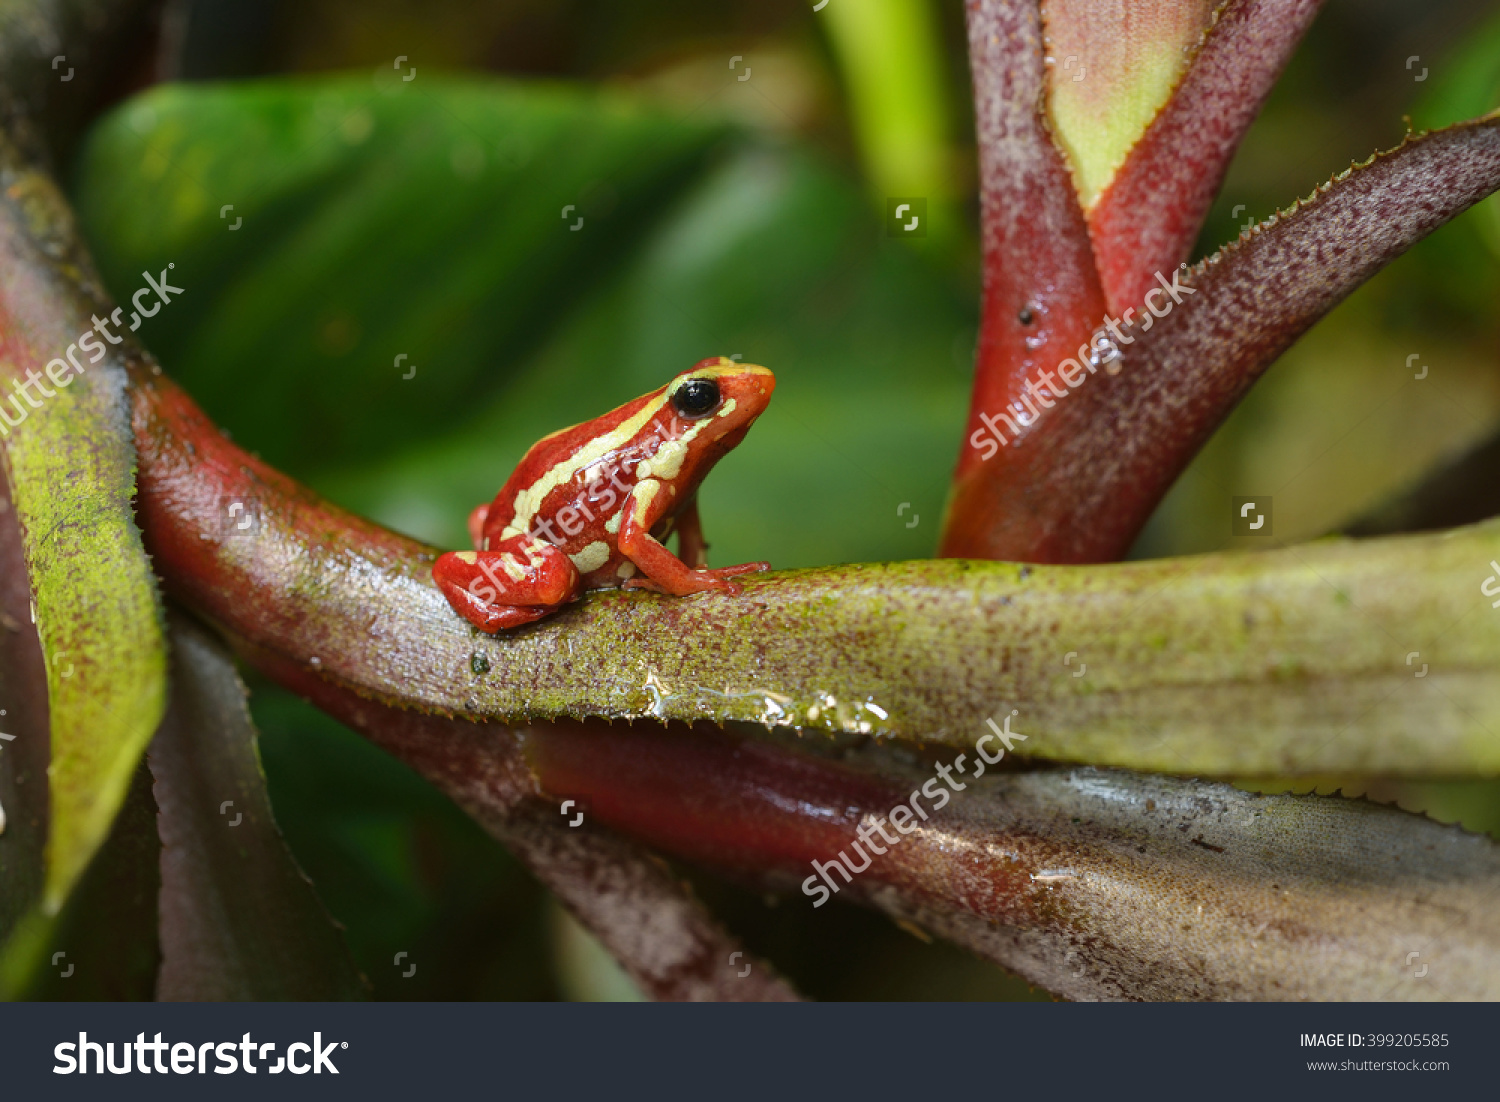 Small Striped Red Frog Epipedobates Tricolor Stock Photo 399205585.